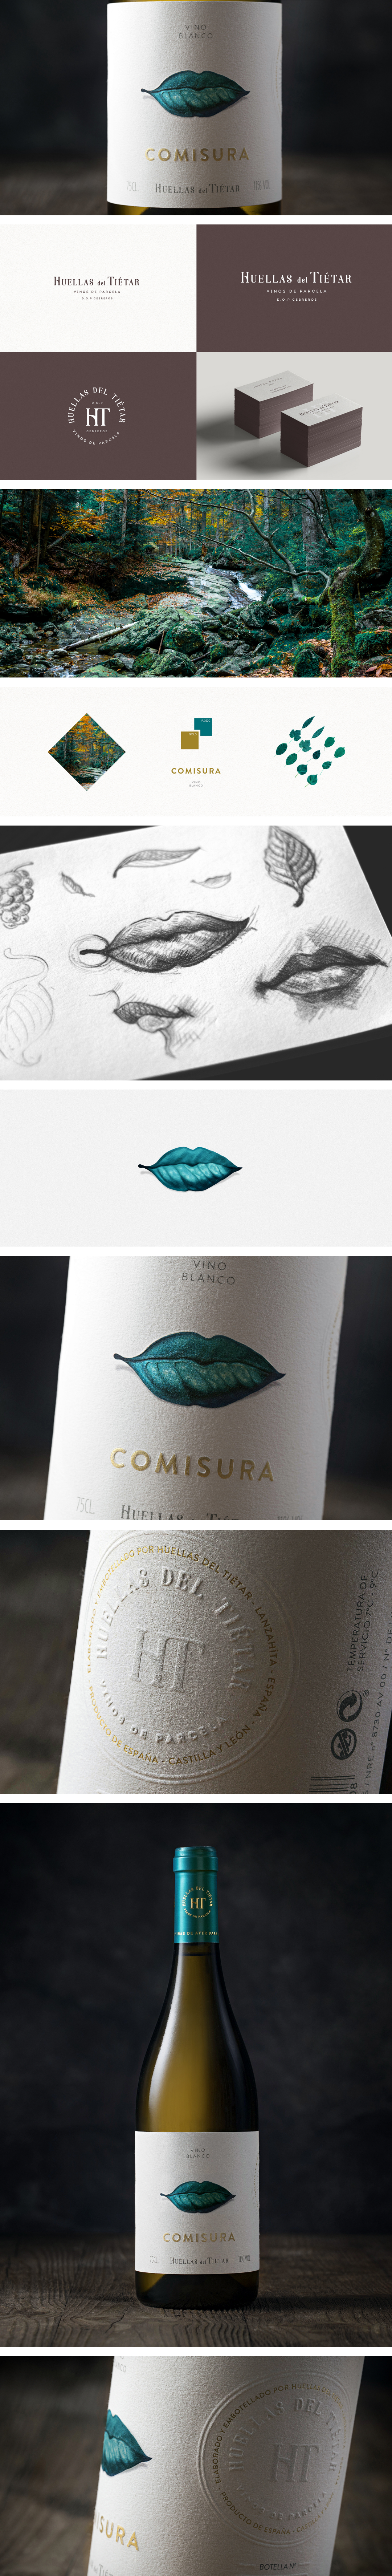 Branding, Graphic Design,Illustration,Product Design